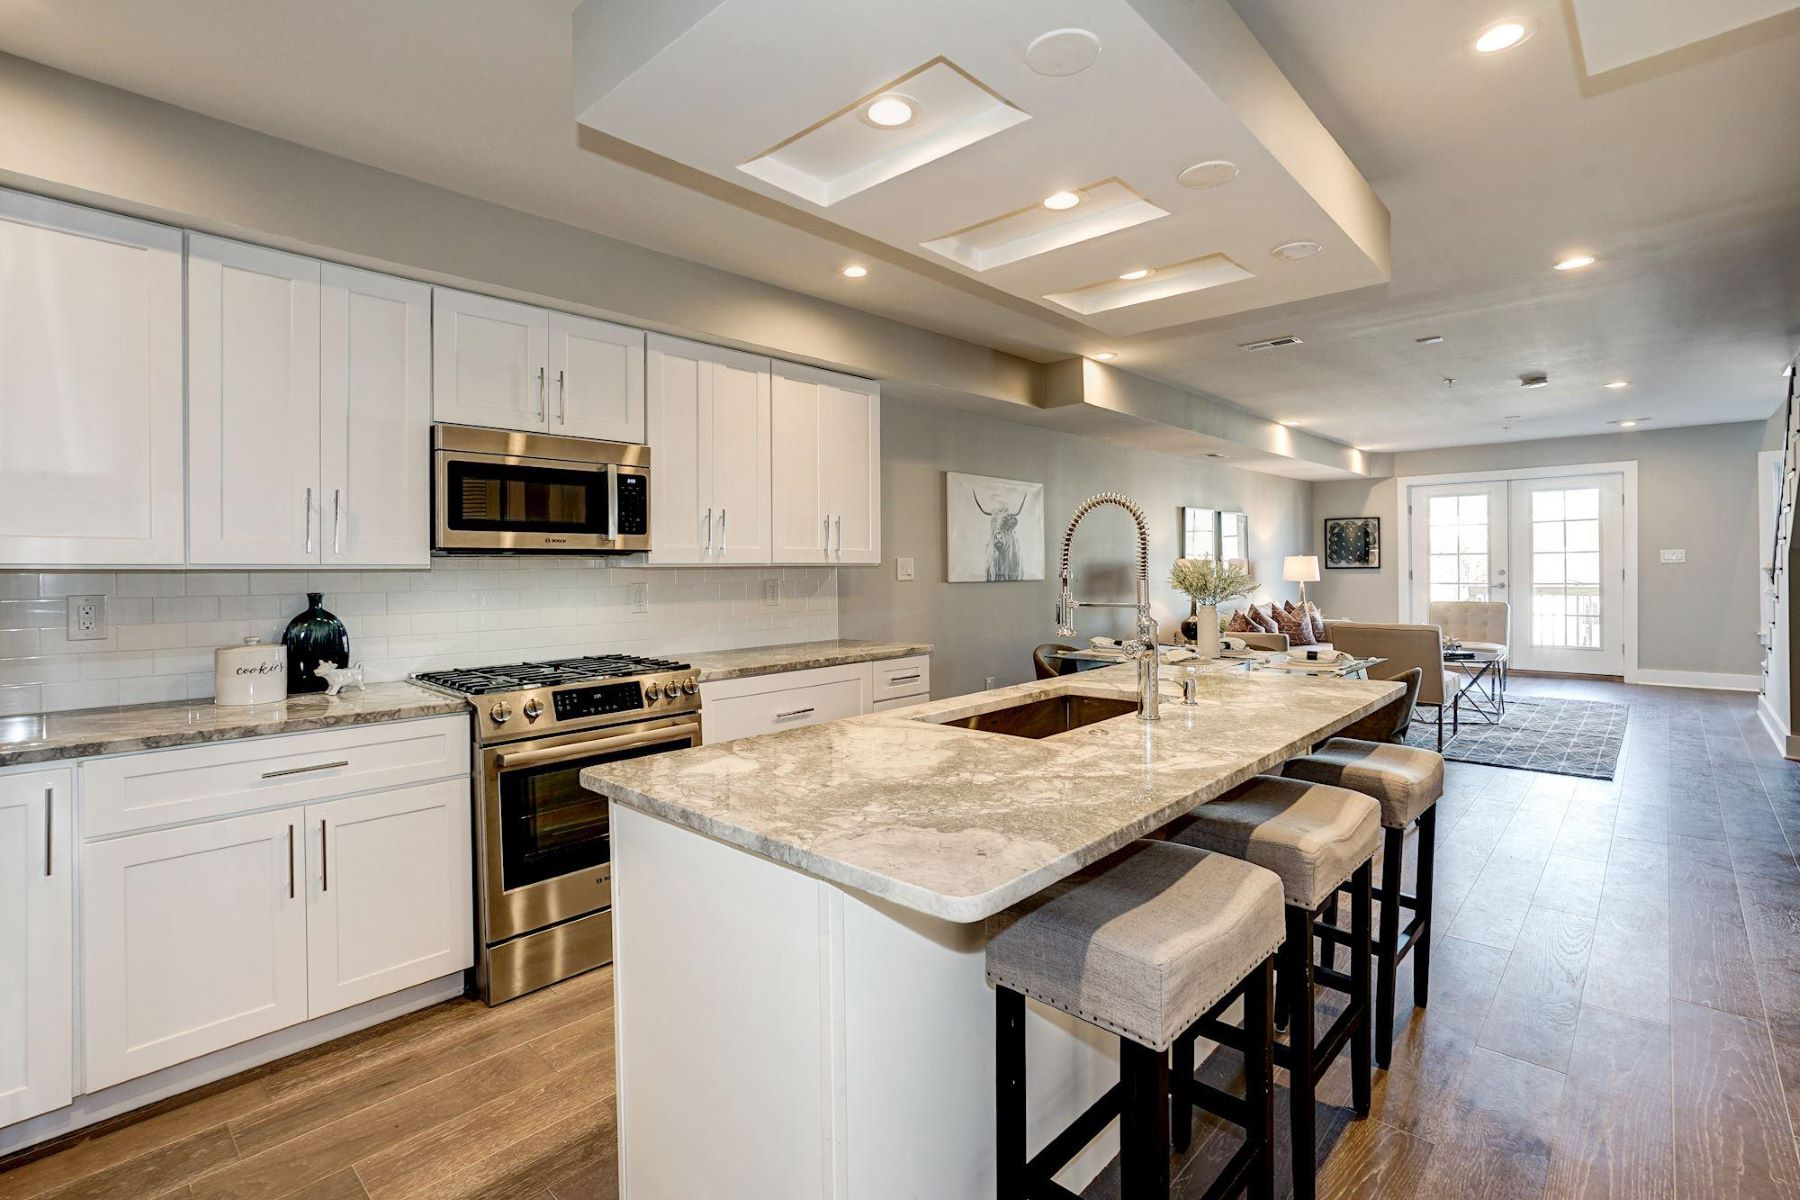 Other Residential for Sale at 1826 Independence Ave SE #3 1826 Independence Ave SE #3 Washington, District Of Columbia 20003 United States